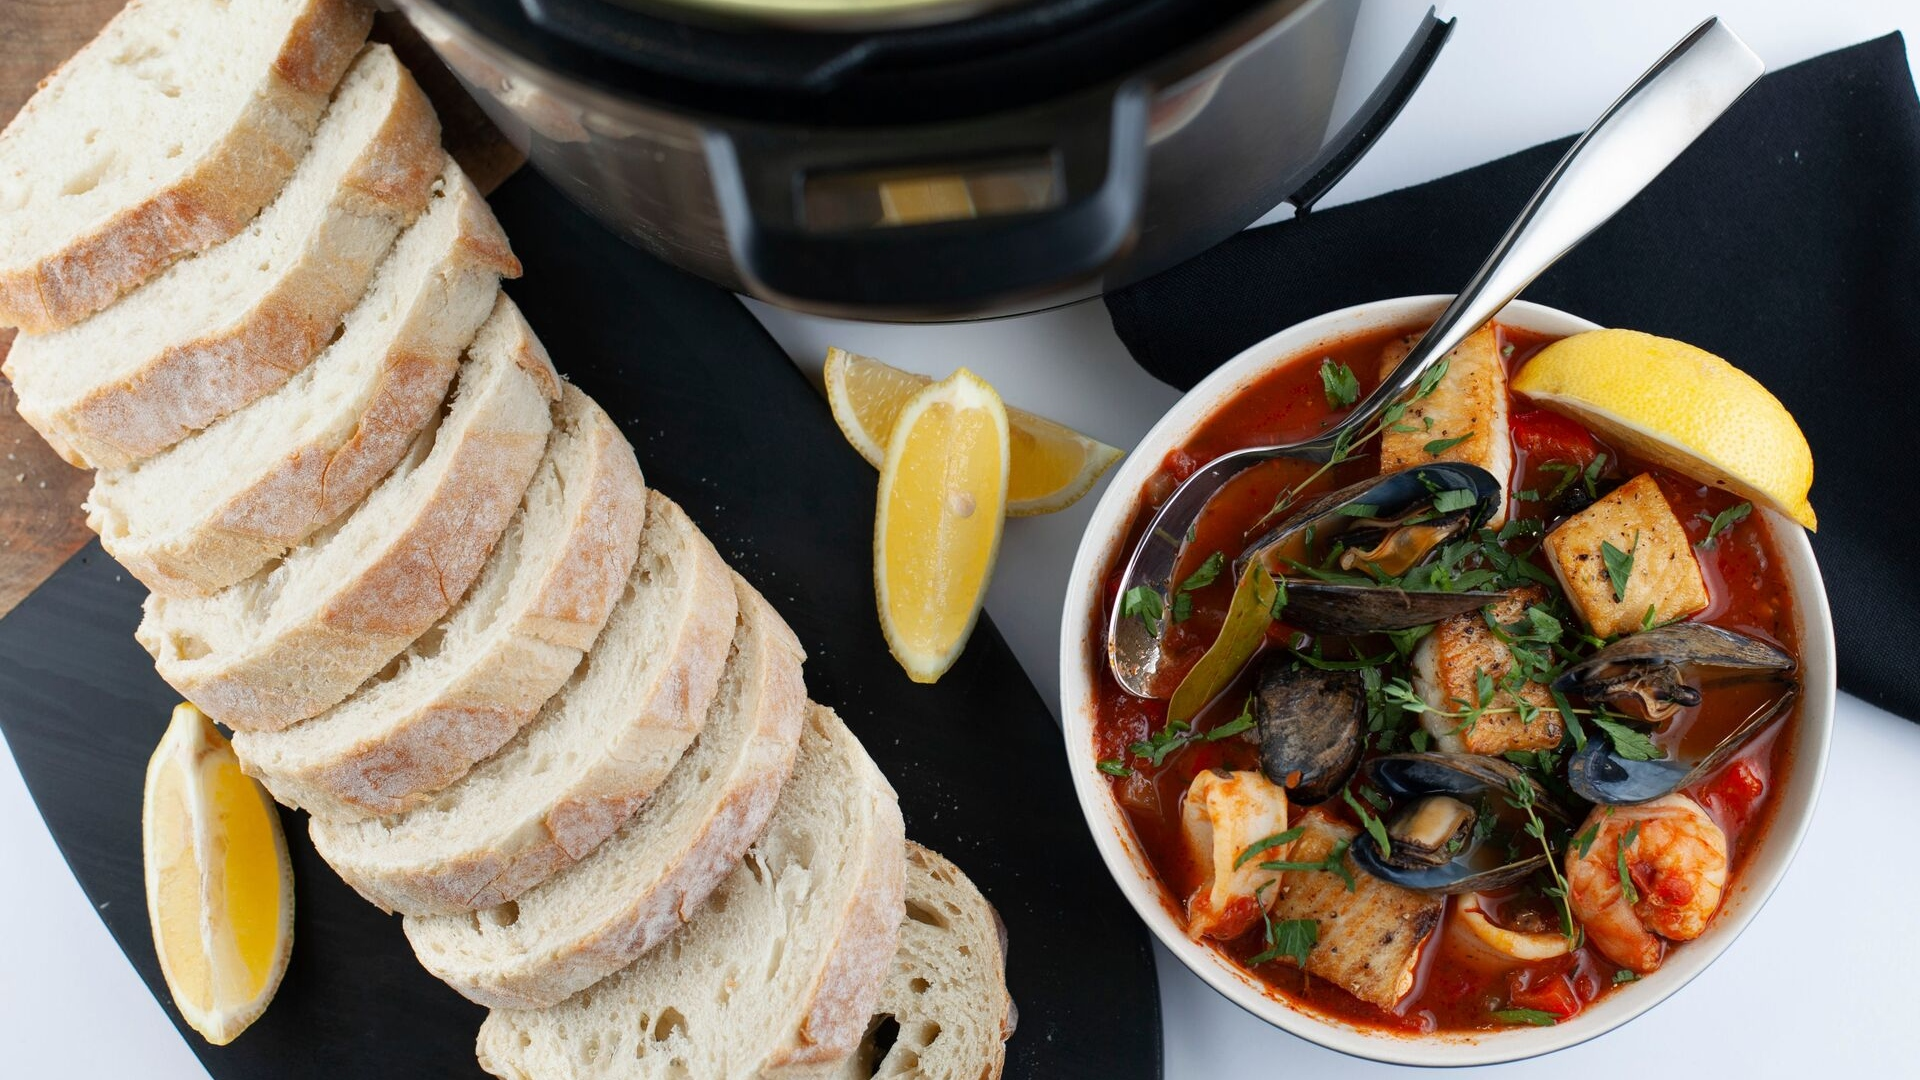 Warm Cioppino Seafood Stew Lunch With Shrimp White Fish Mussels And More